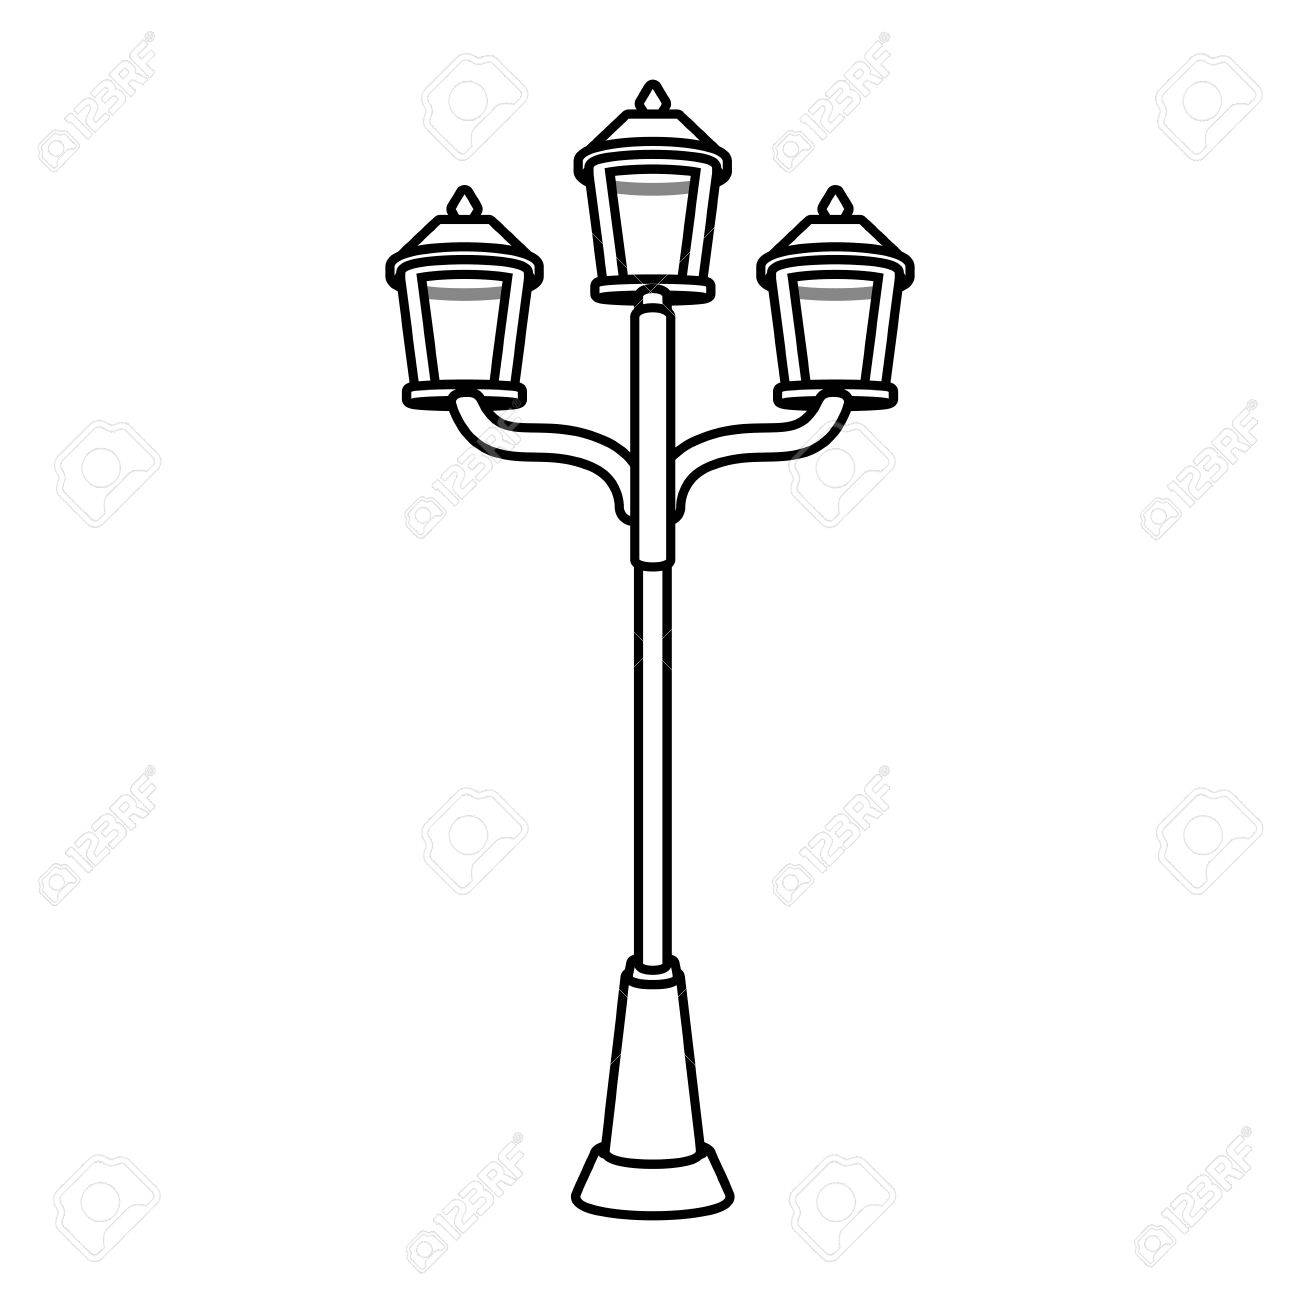 1300x1300 Drawing Luminaires With Three Lamps Vector Illustration Royalty